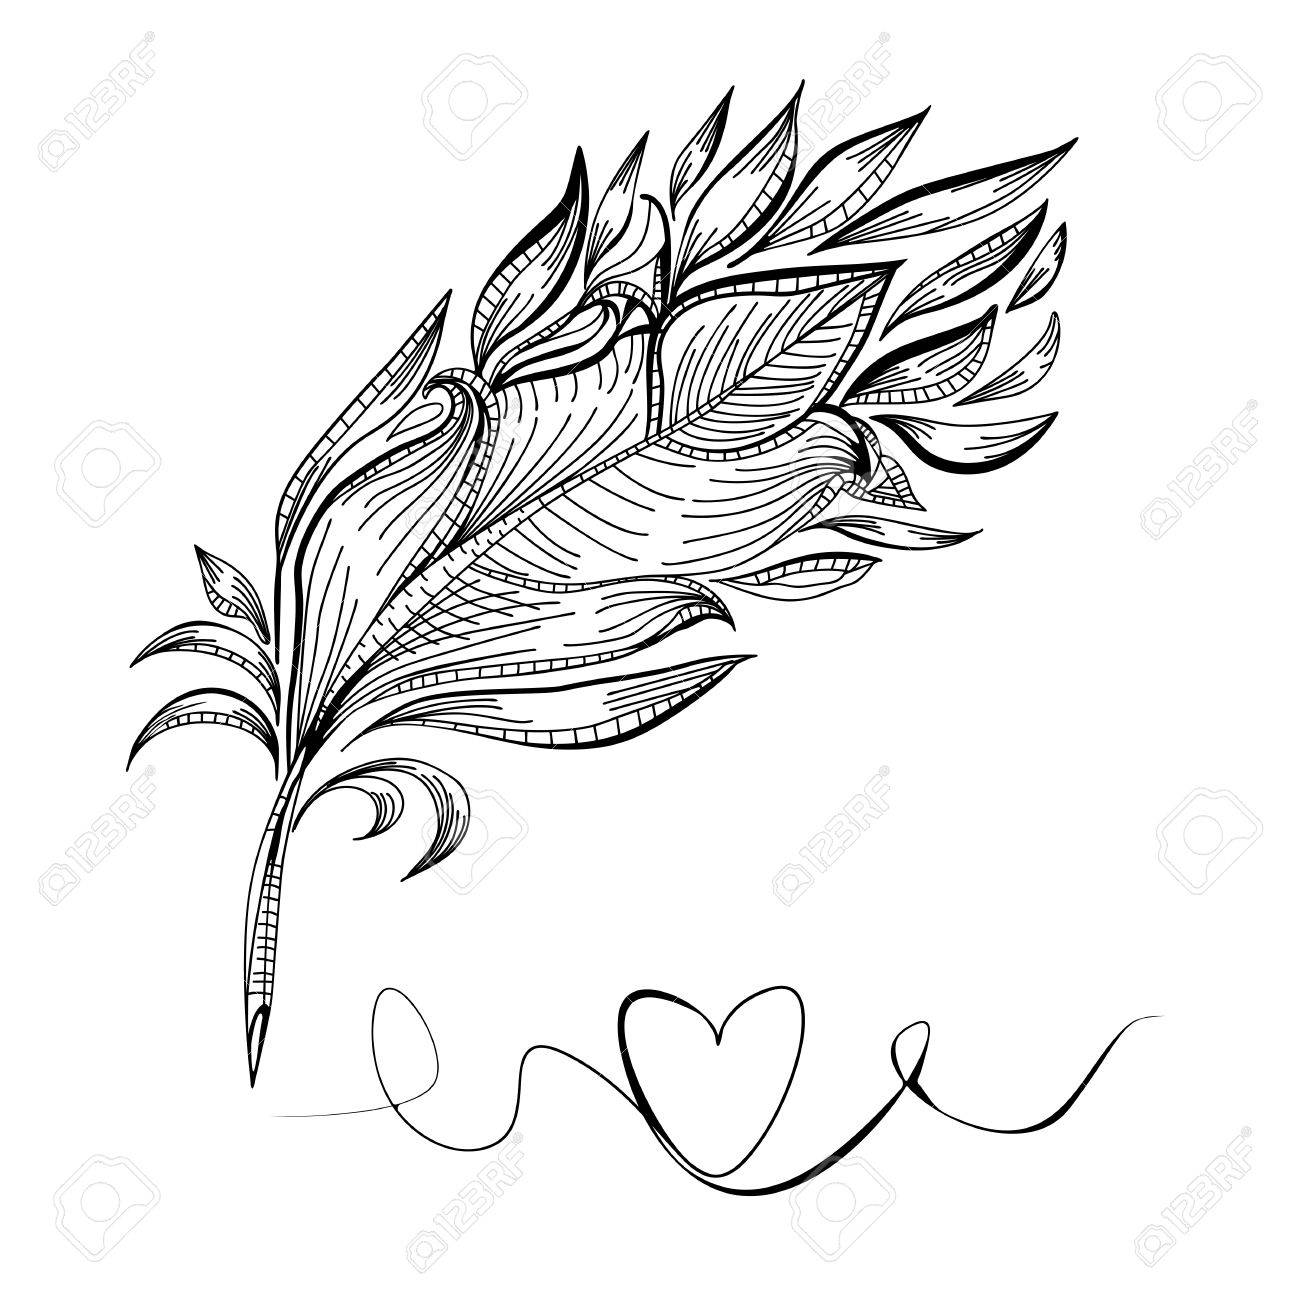 1300x1300 Drawing A Doodle Bird Feather, Line Vector Illustration Royalty